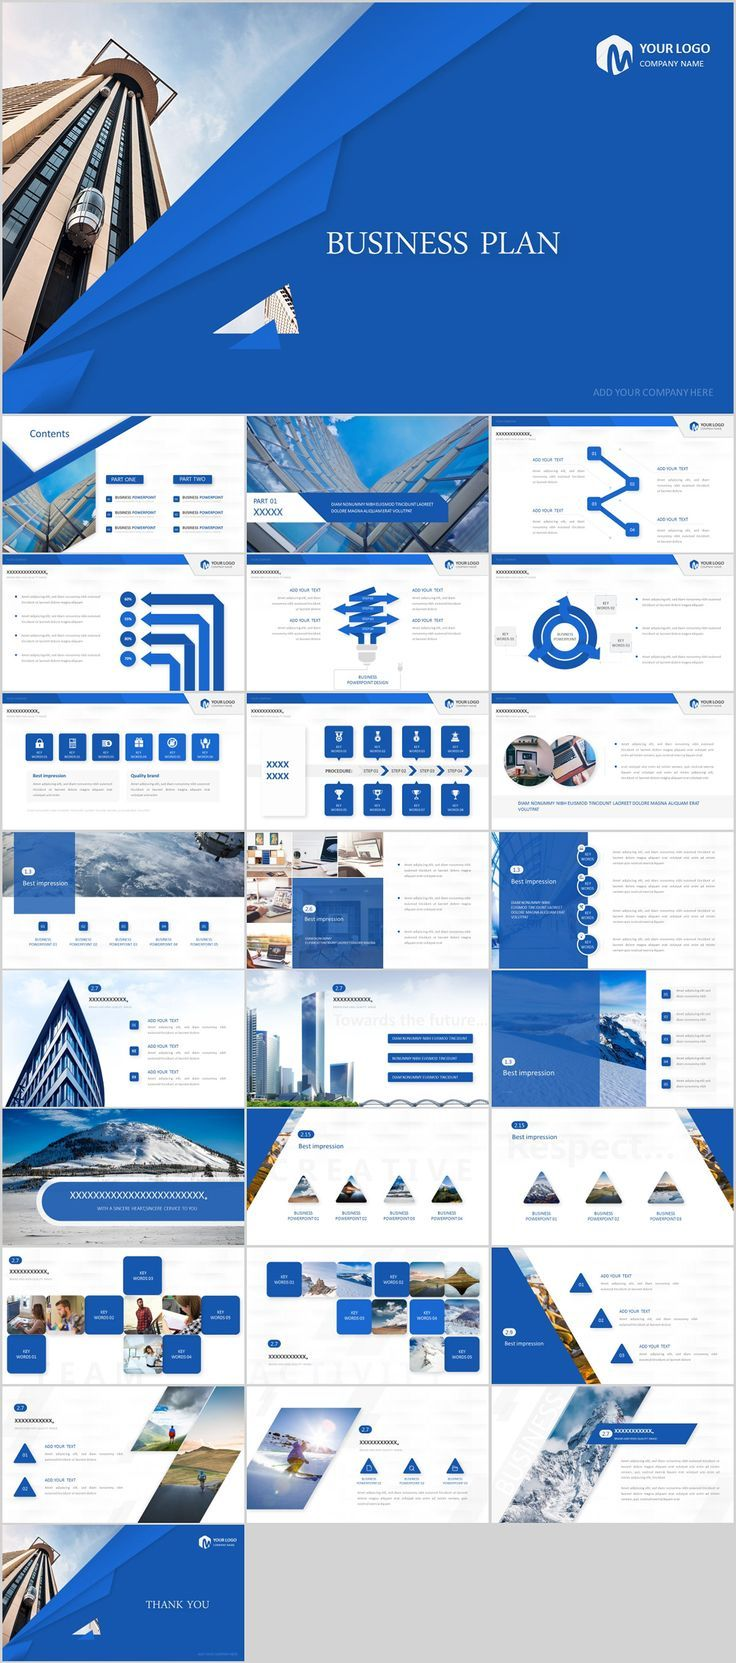 26 blue creative business plan powerpoint template on behance 26 blue creative business plan powerpoint template on behance powerpoint templates presentation toneelgroepblik